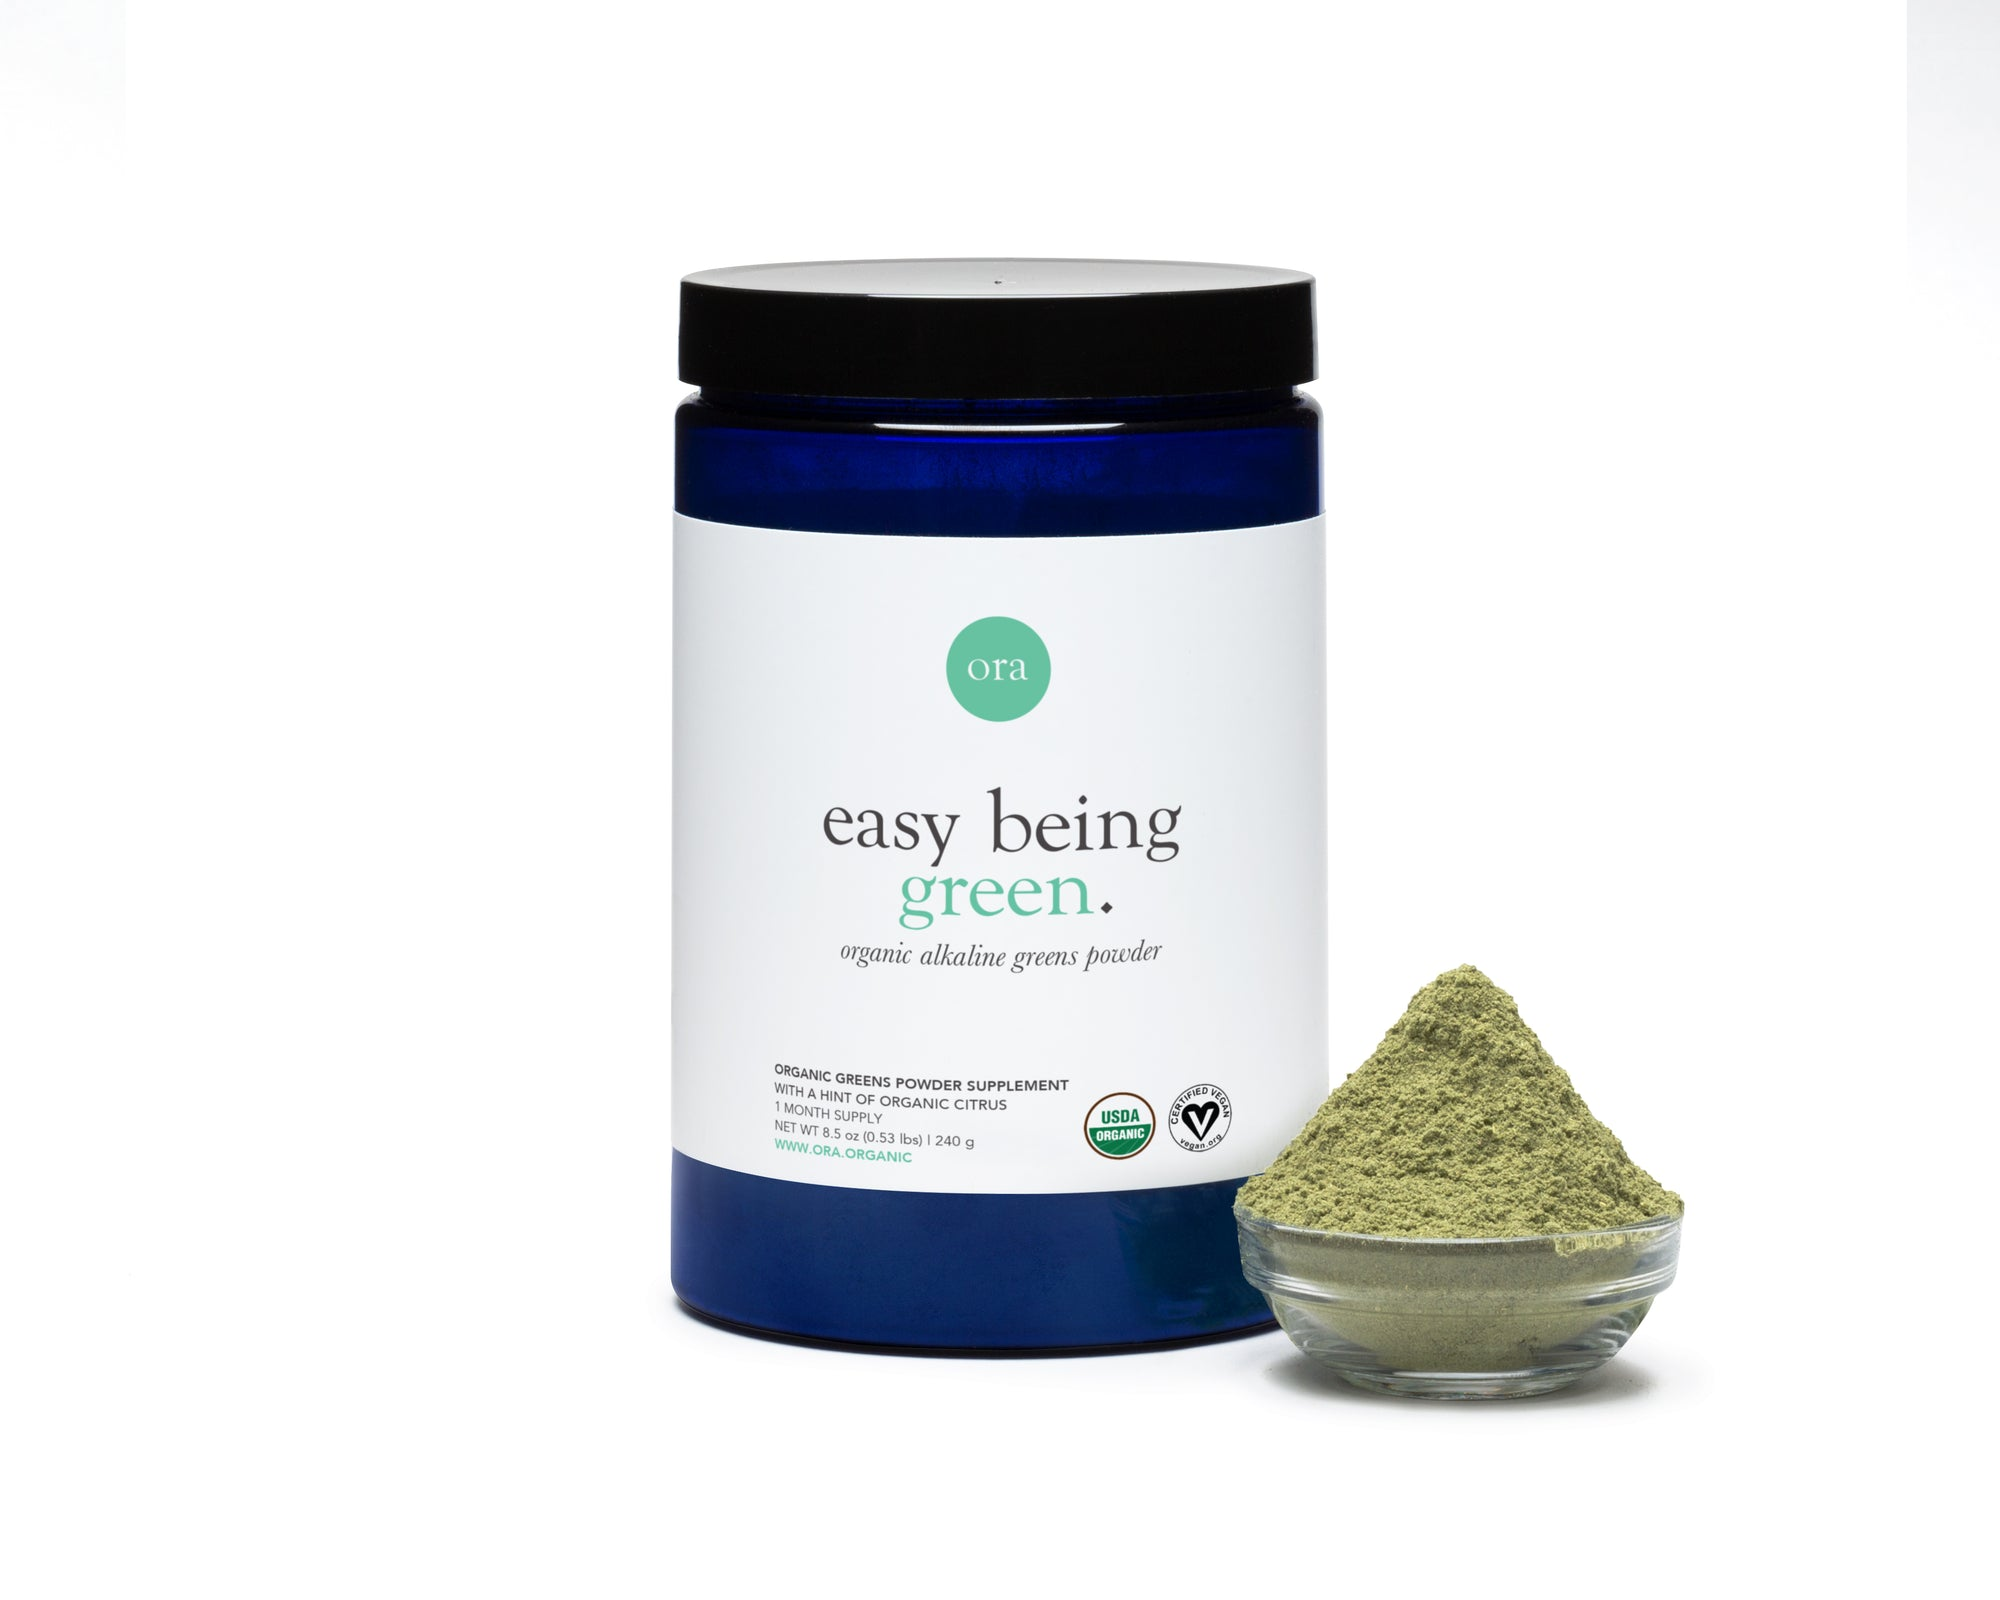 Organic Greens Powder (Fruit & Citrus Flavored)